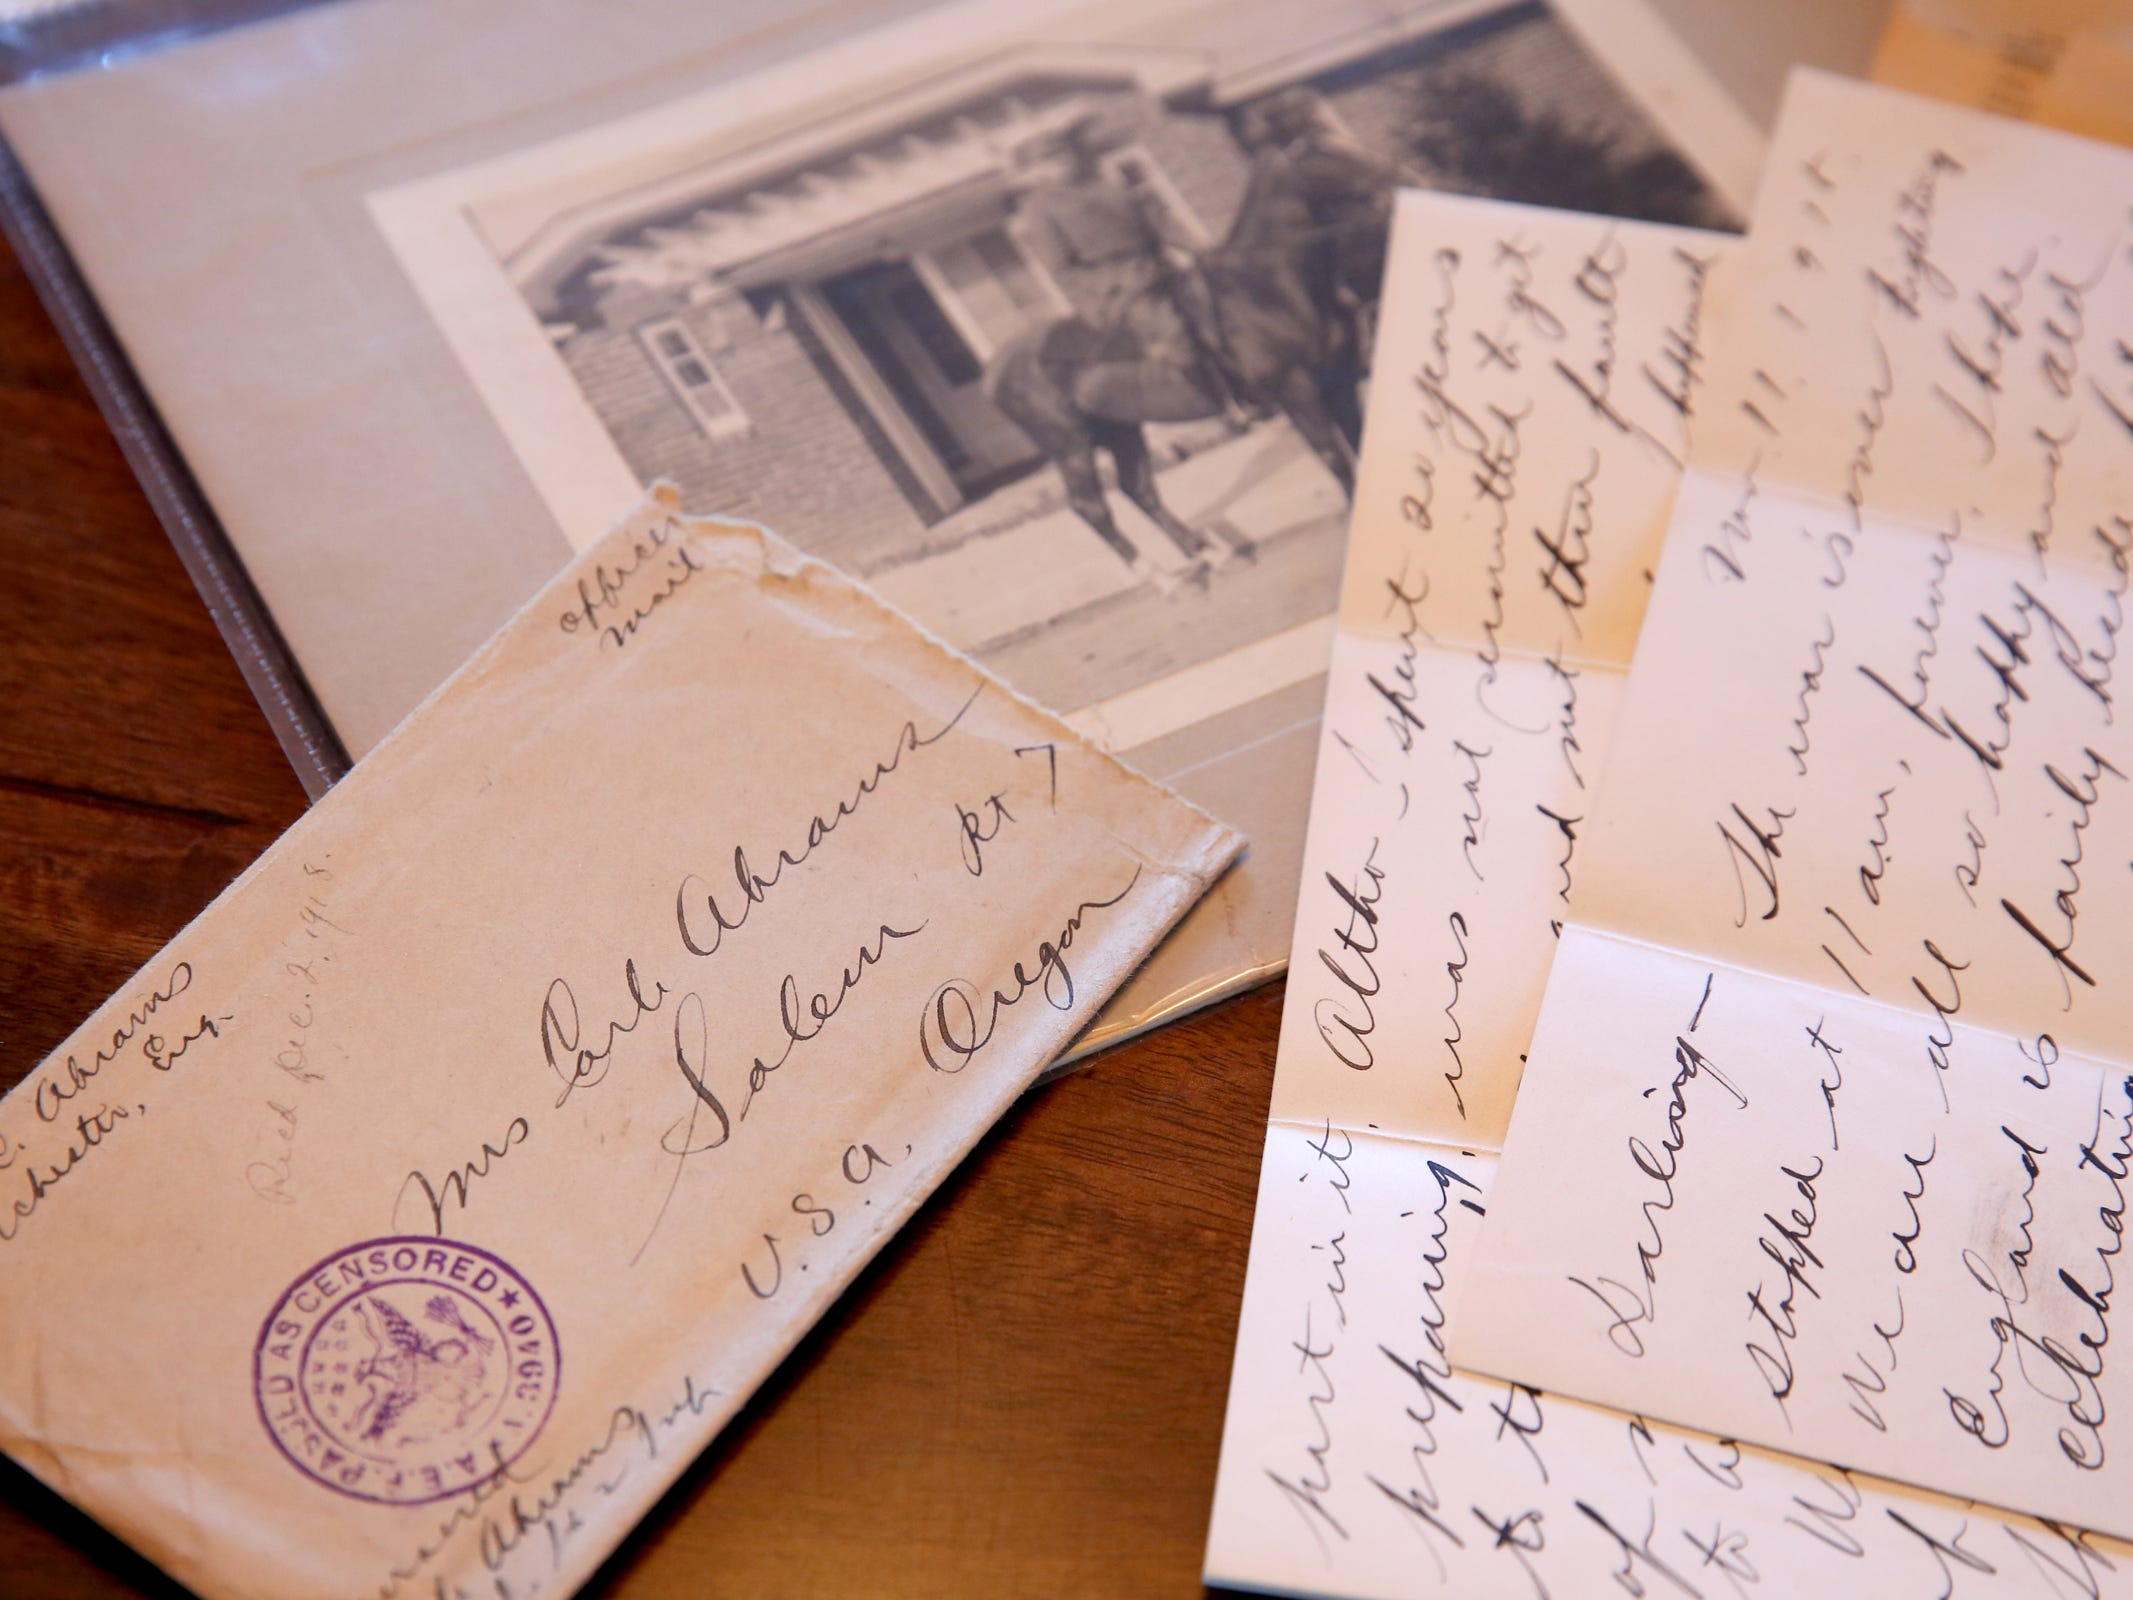 WWI-era letters and a photo of Lt. Col. Carle Abrams, the grandfather of Sue Baker. Baker has letters by her grandfather to her grandmother during WWI, including one written on the last day of the war. Photographed at Baler's West Salem home on Monday, Oct. 29, 2018.